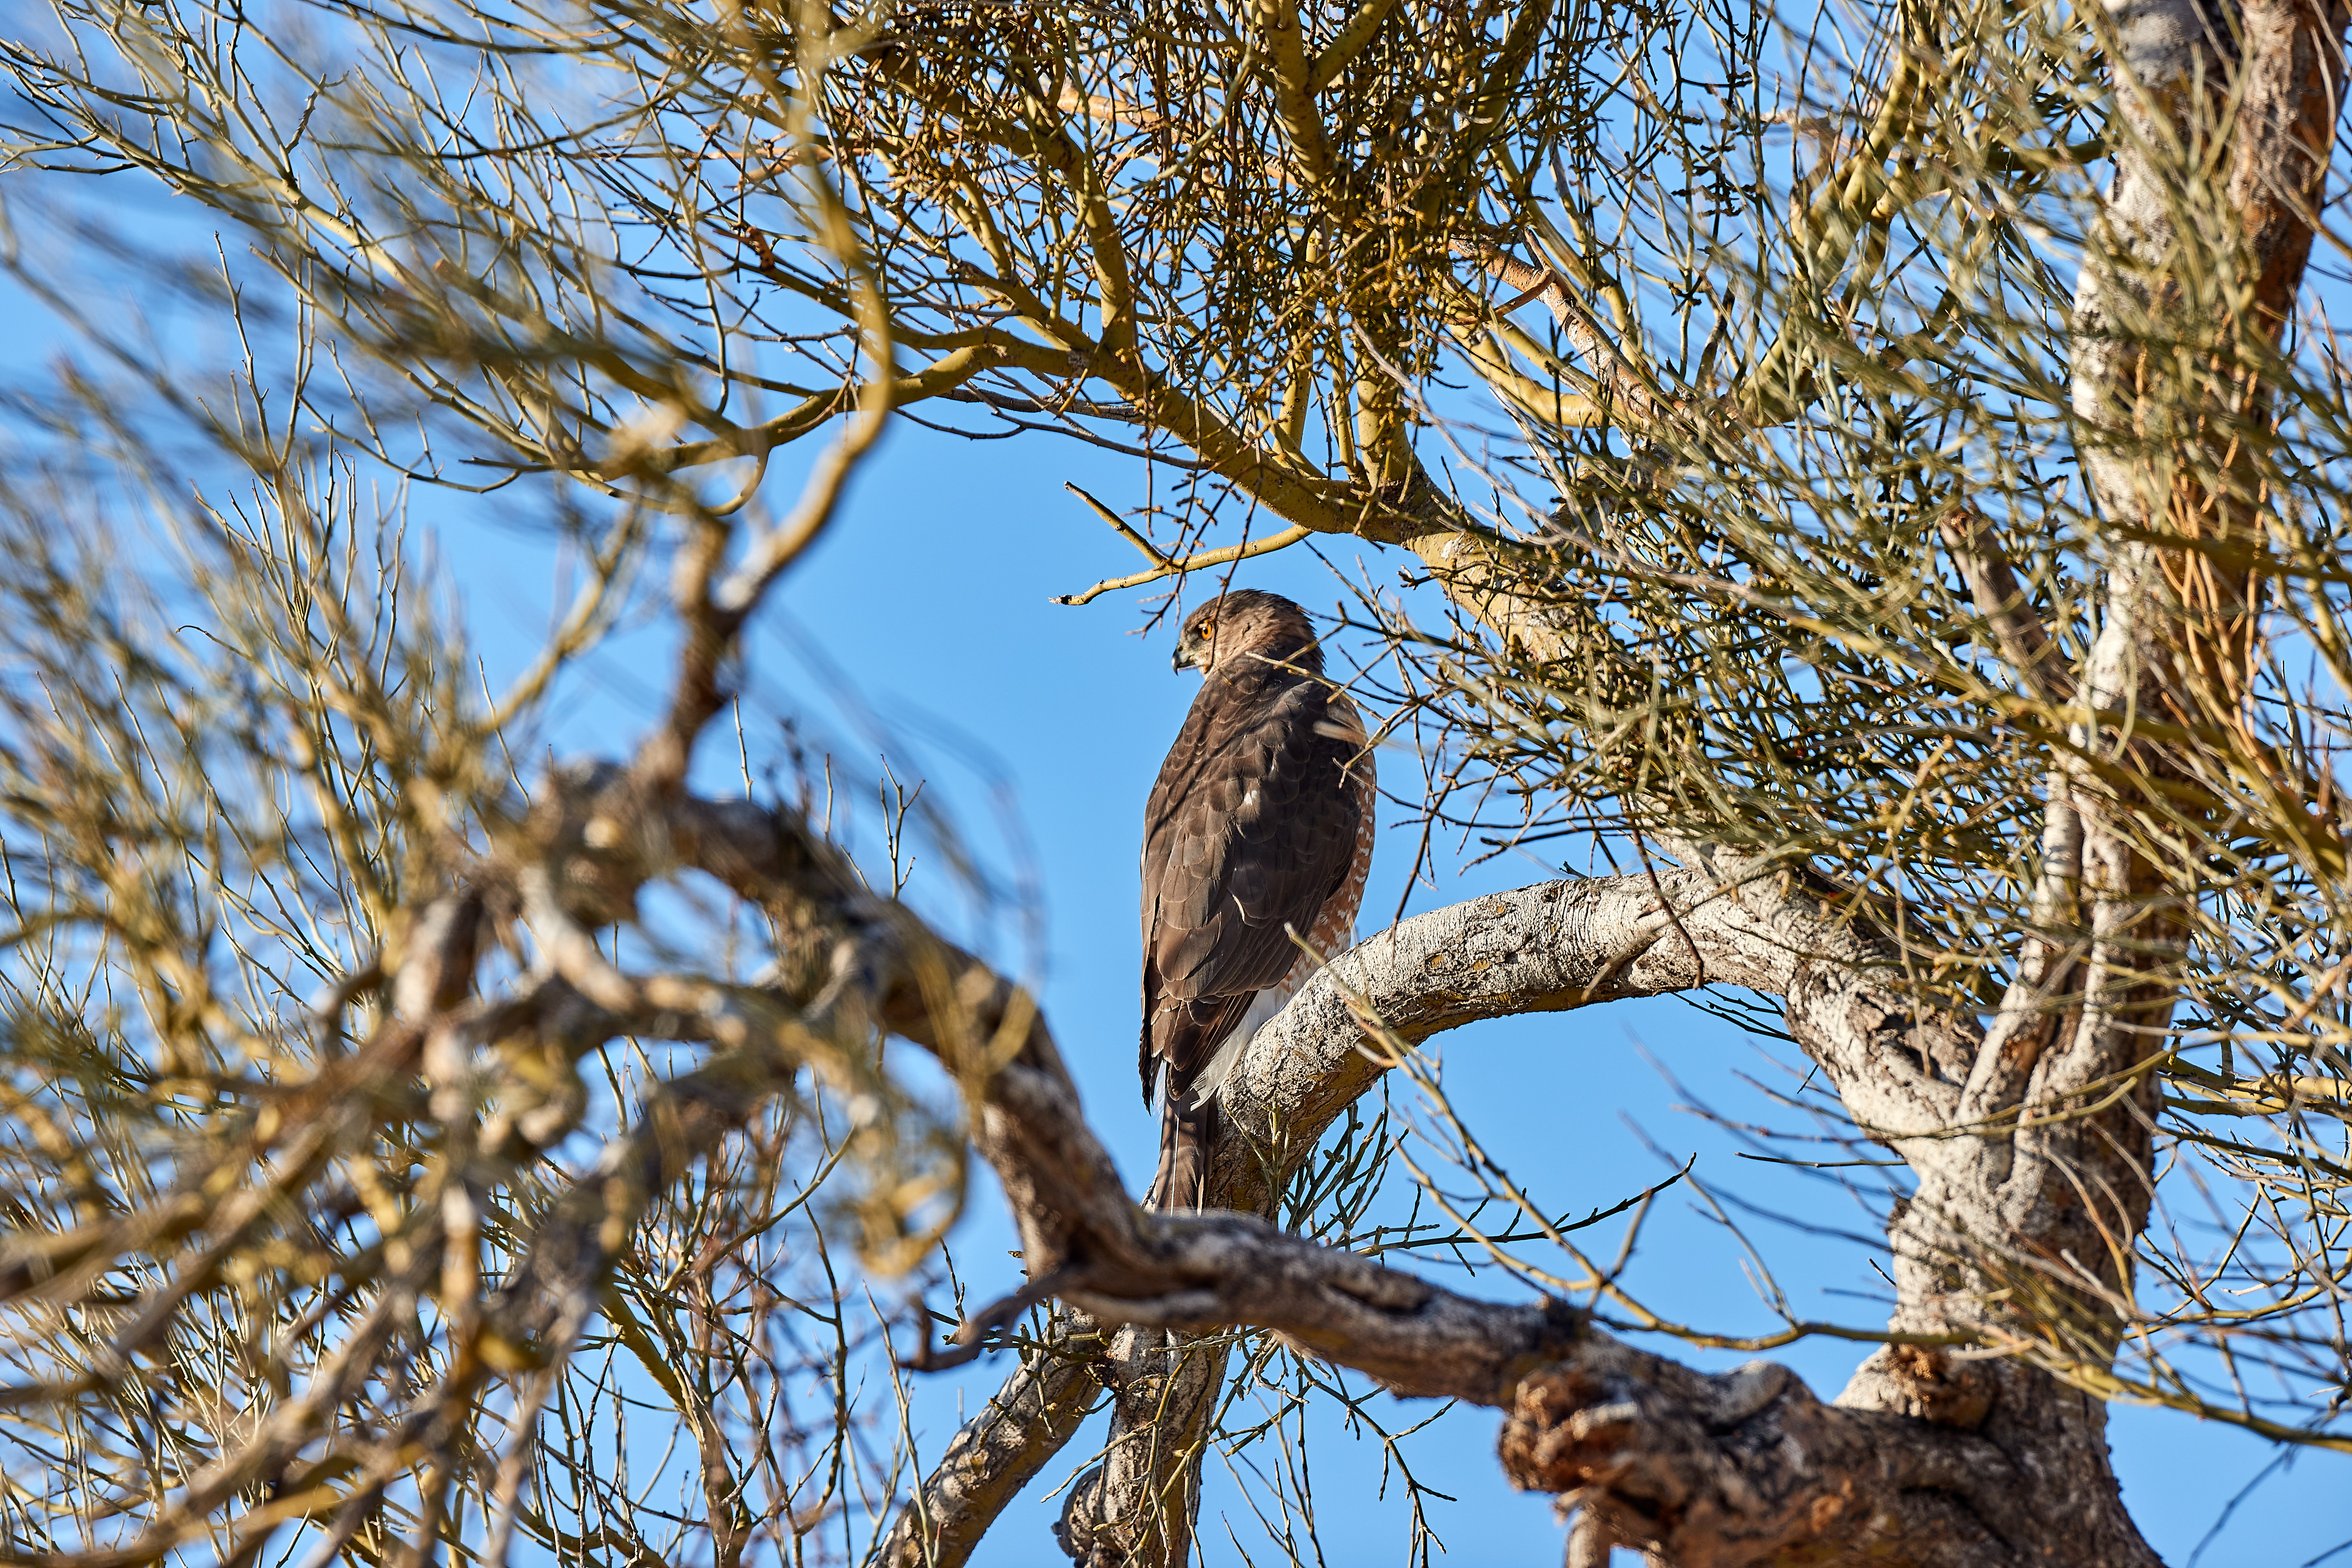 132063 download wallpaper Animals, Hawk, Bird, Predator, Brown, Wood, Tree, Branches screensavers and pictures for free